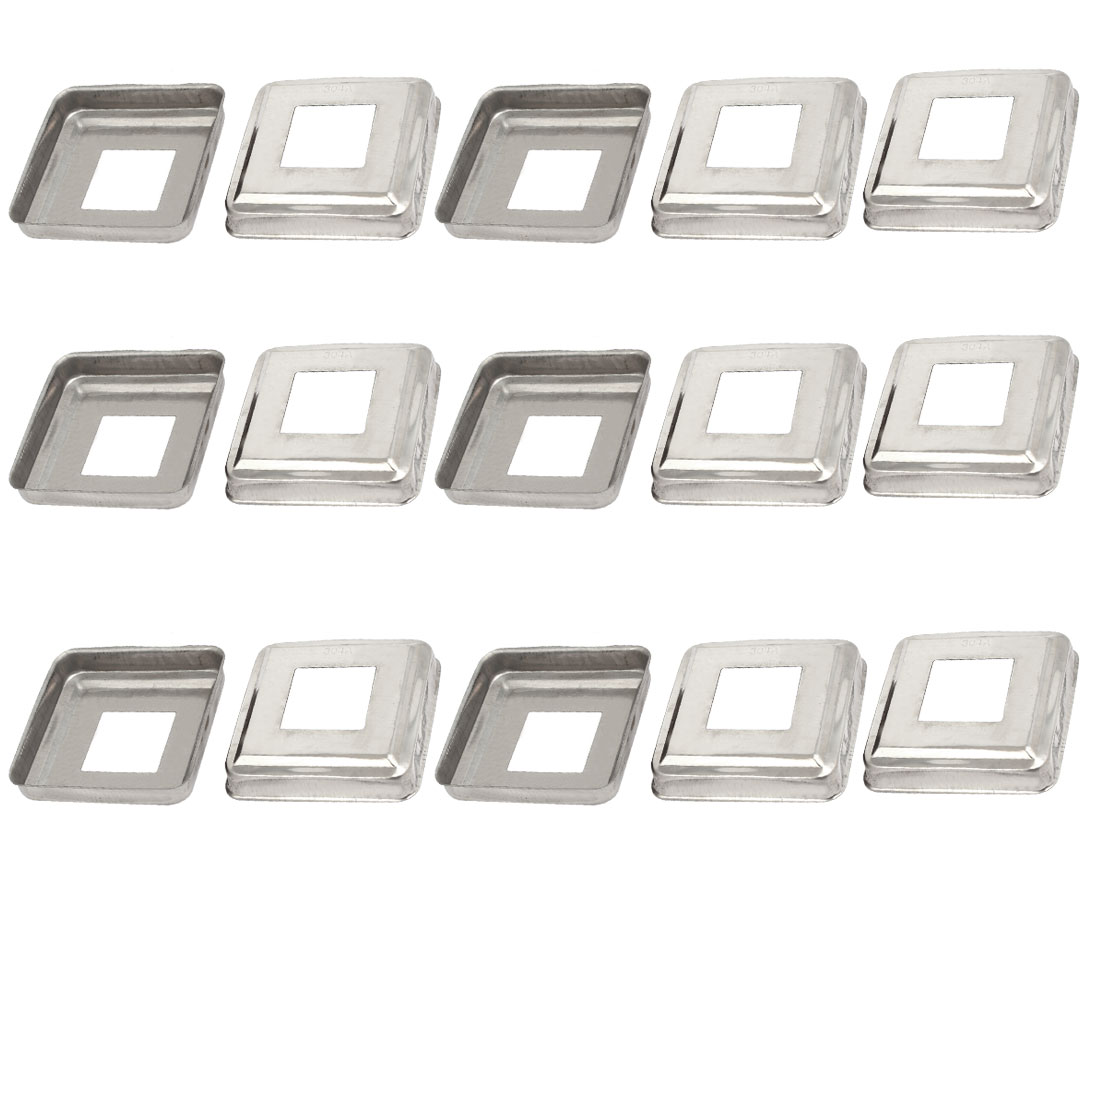 15pcs Ladder Handrail Hand Rail 30mm x 30mm Post Plate Cover 304 Stainless Steel